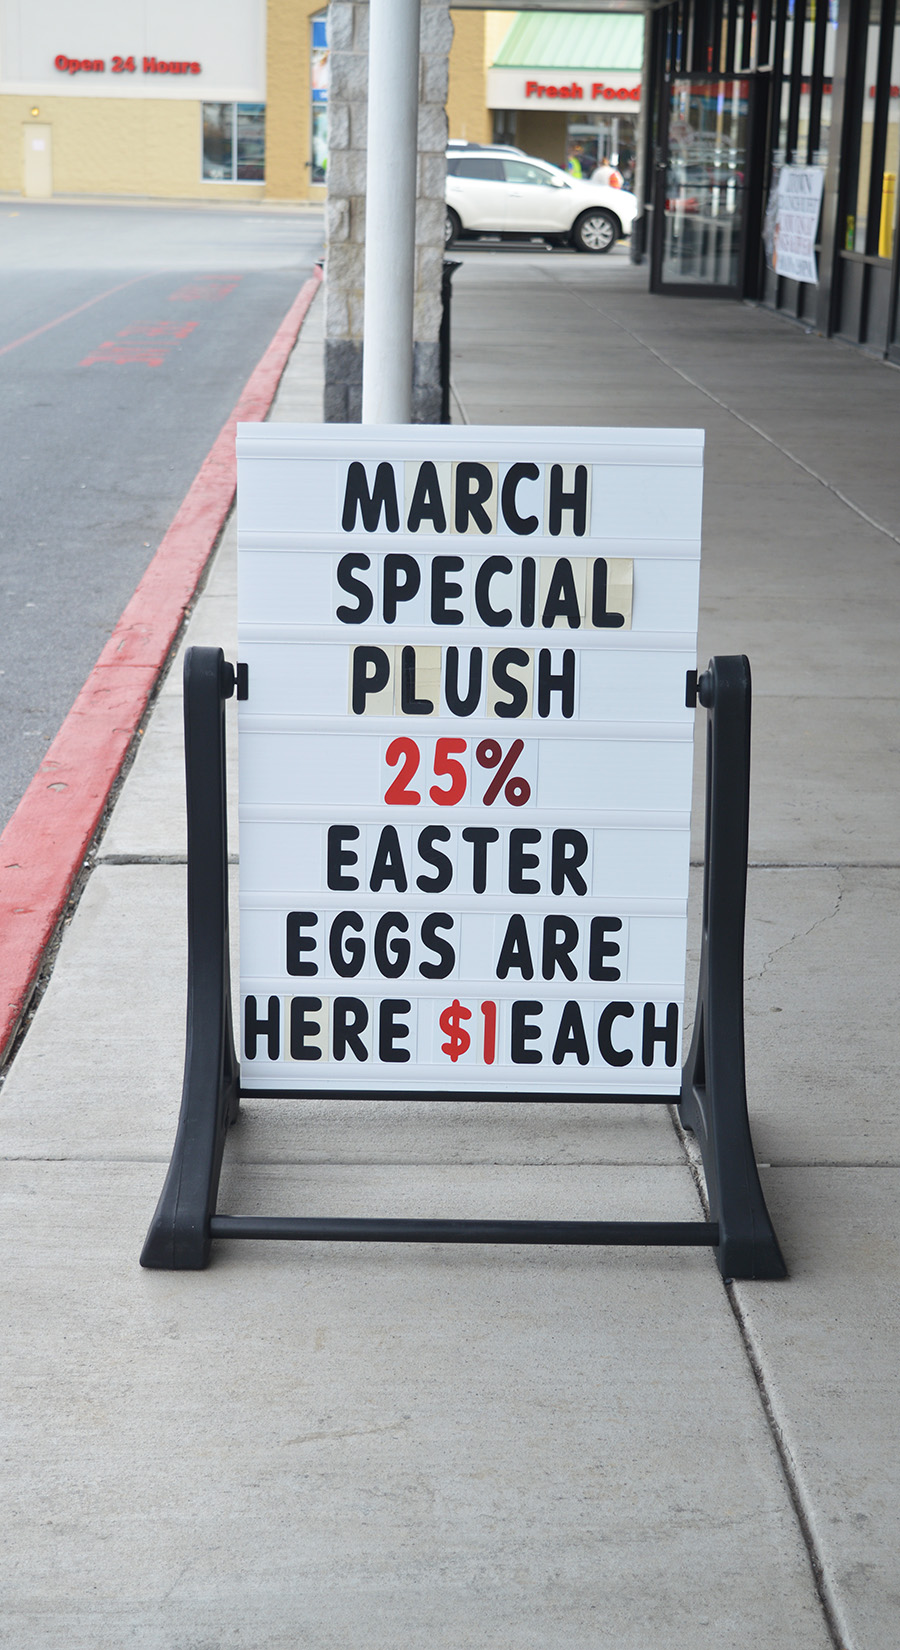 Sidewalk sign with large black letters announcing a March special of 25% off forchocolate Easter eggs, $1 each. Photo: Mira Johnson.